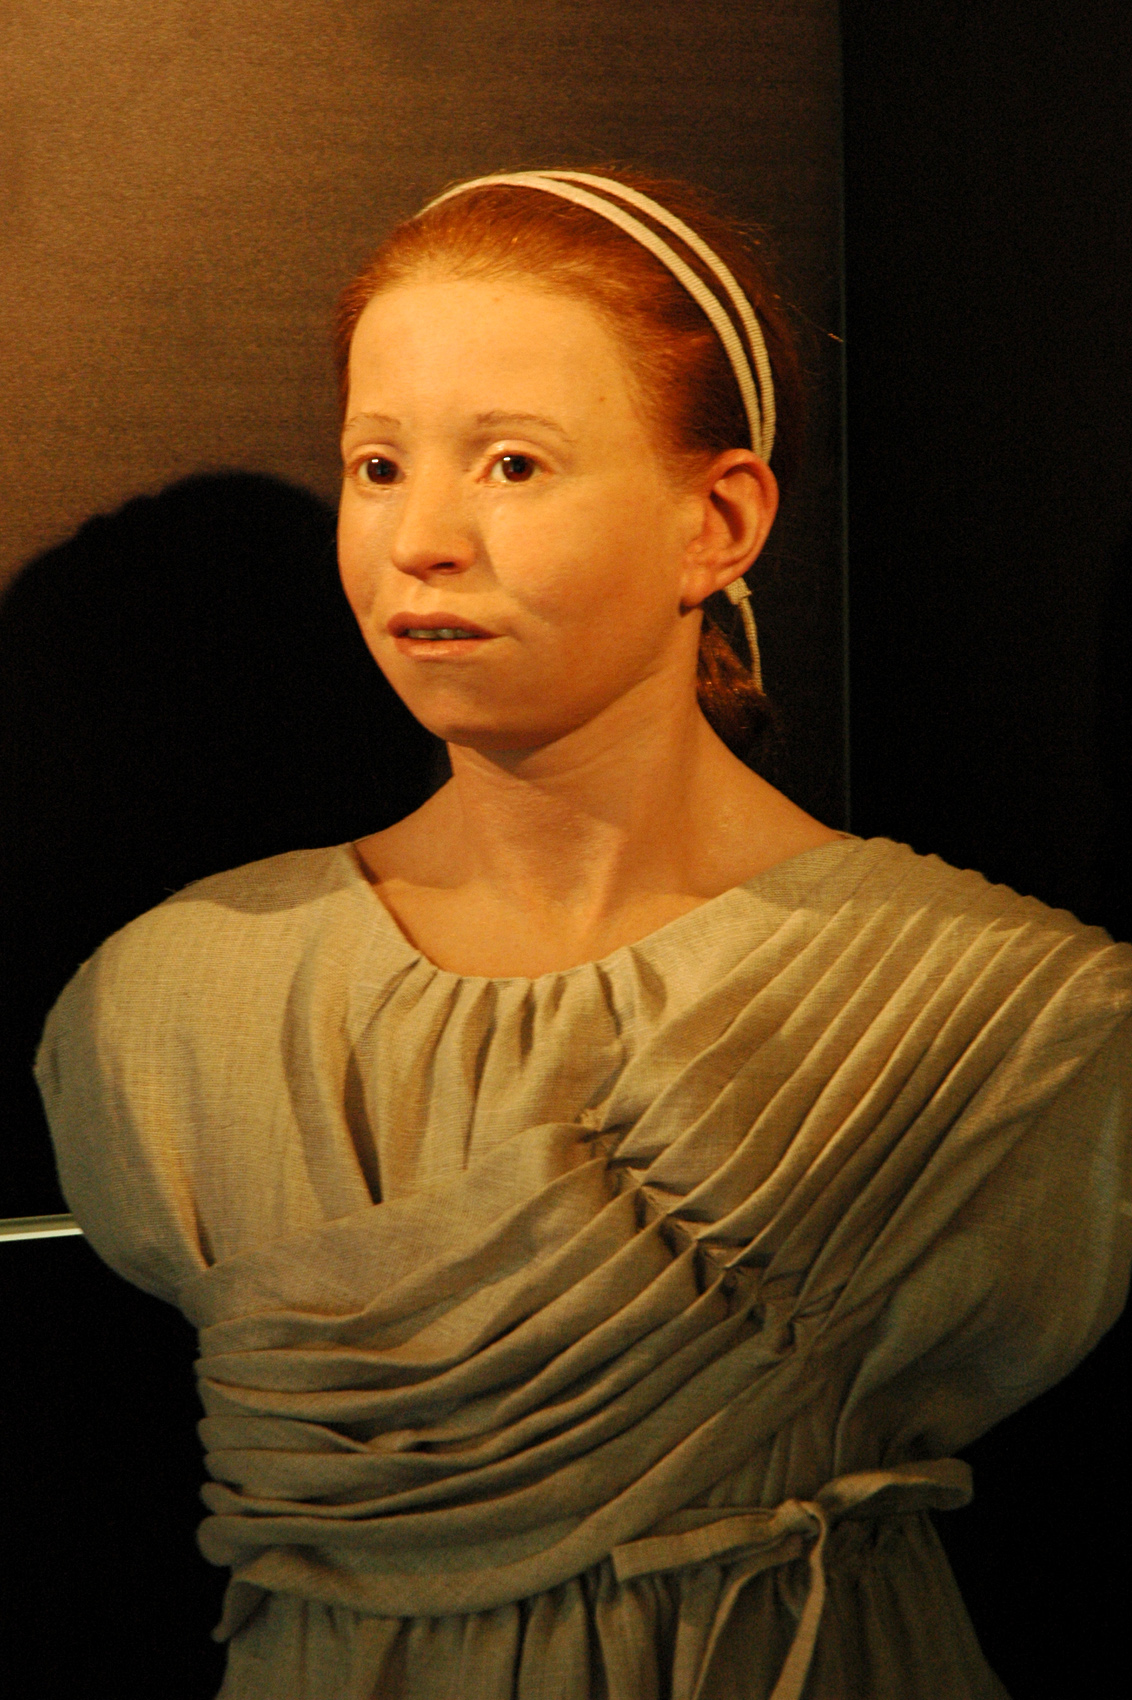 """File:Reconstruction of """"Myrtis"""", an ancient Athenian girl - www.myrtis.gr -  panoramio.jpg - Wikimedia Commons"""